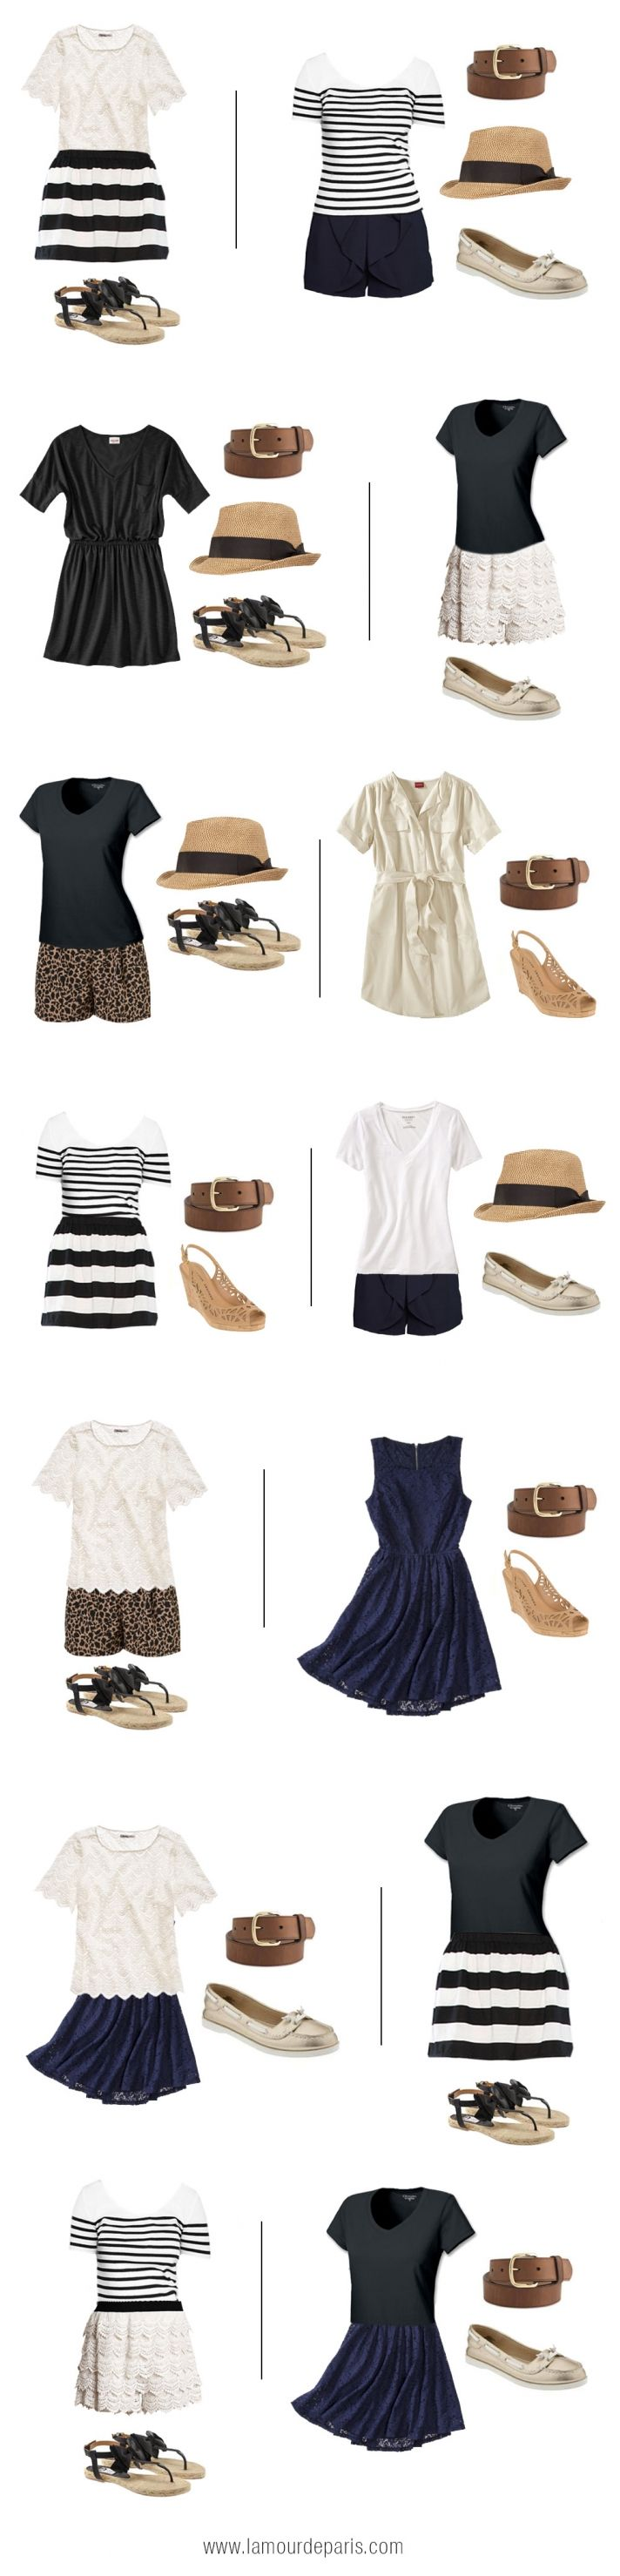 How to pack for a vacation: All these outfits are super cute!